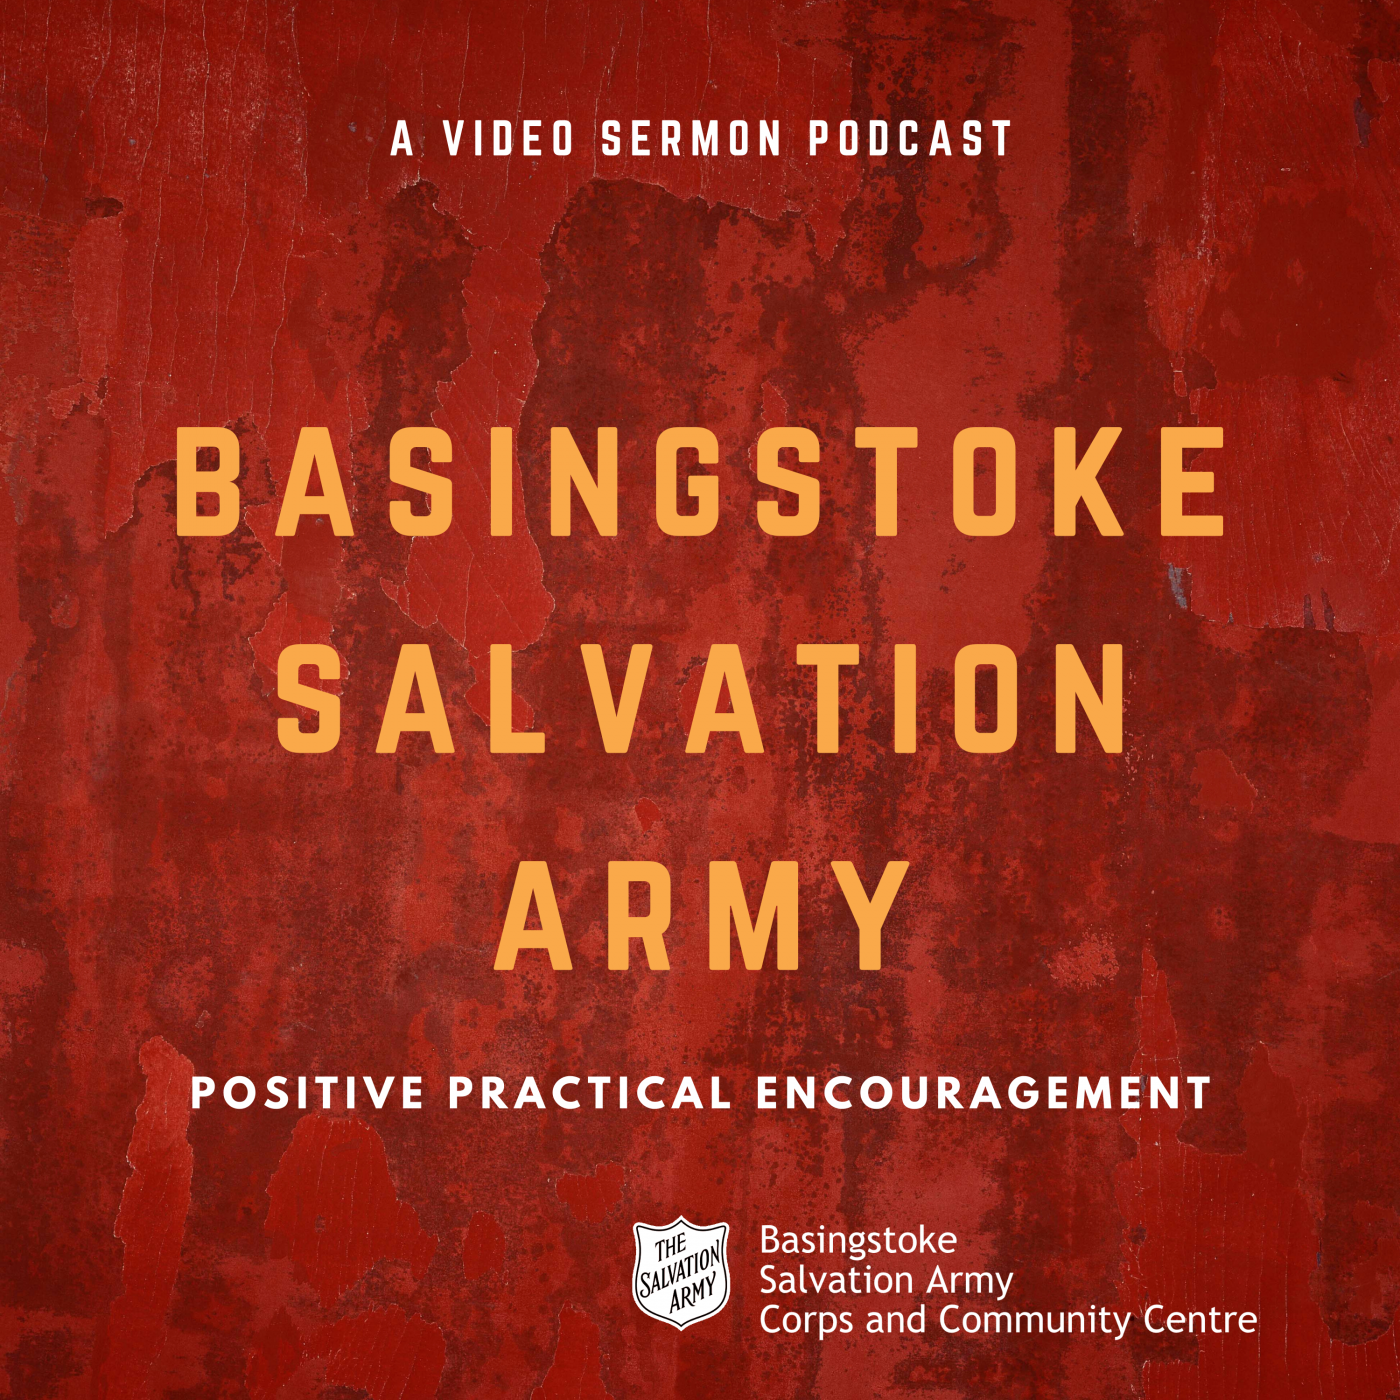 Basingstoke Salvation Army Sermons - Video